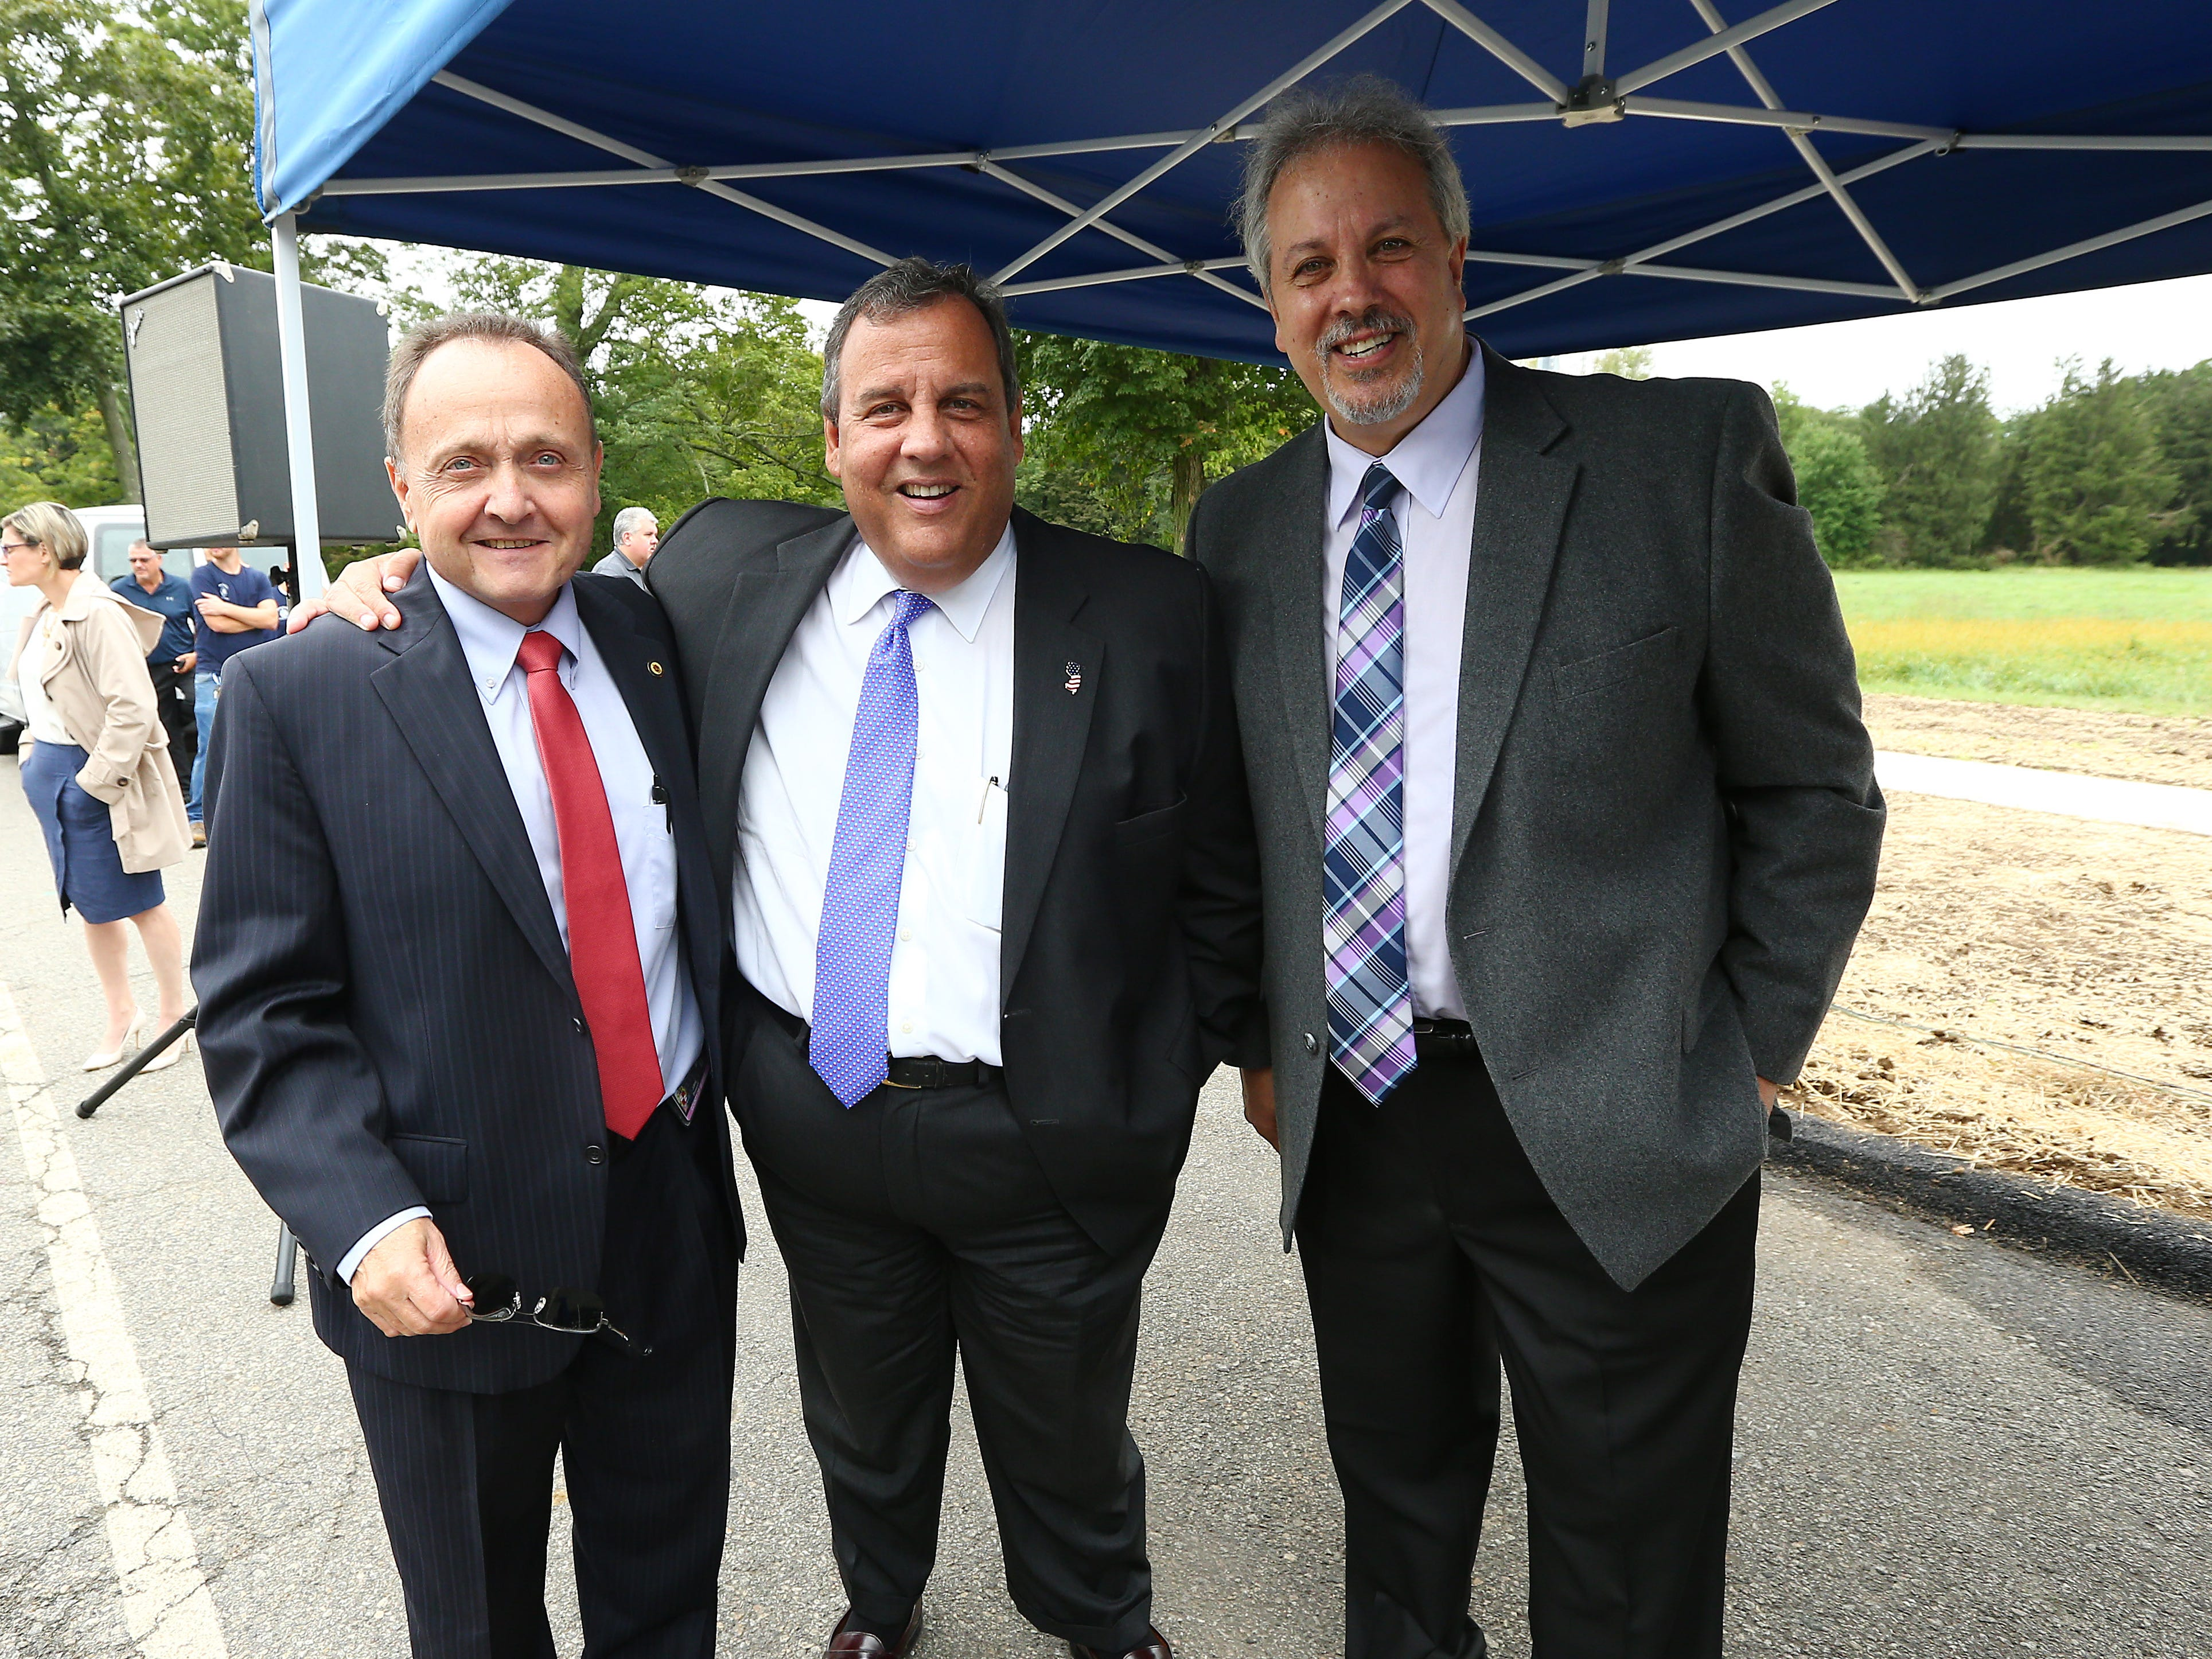 Morris County Administrator John Bonanni, l, with former NJ Gov. Chris Christie and  Larry Ragonese as Morris County freeholders formally open Gov. Chris Christie Drive, a new main access road to Central Park of Morris County. September 12, 2018, Morris Plains, NJ